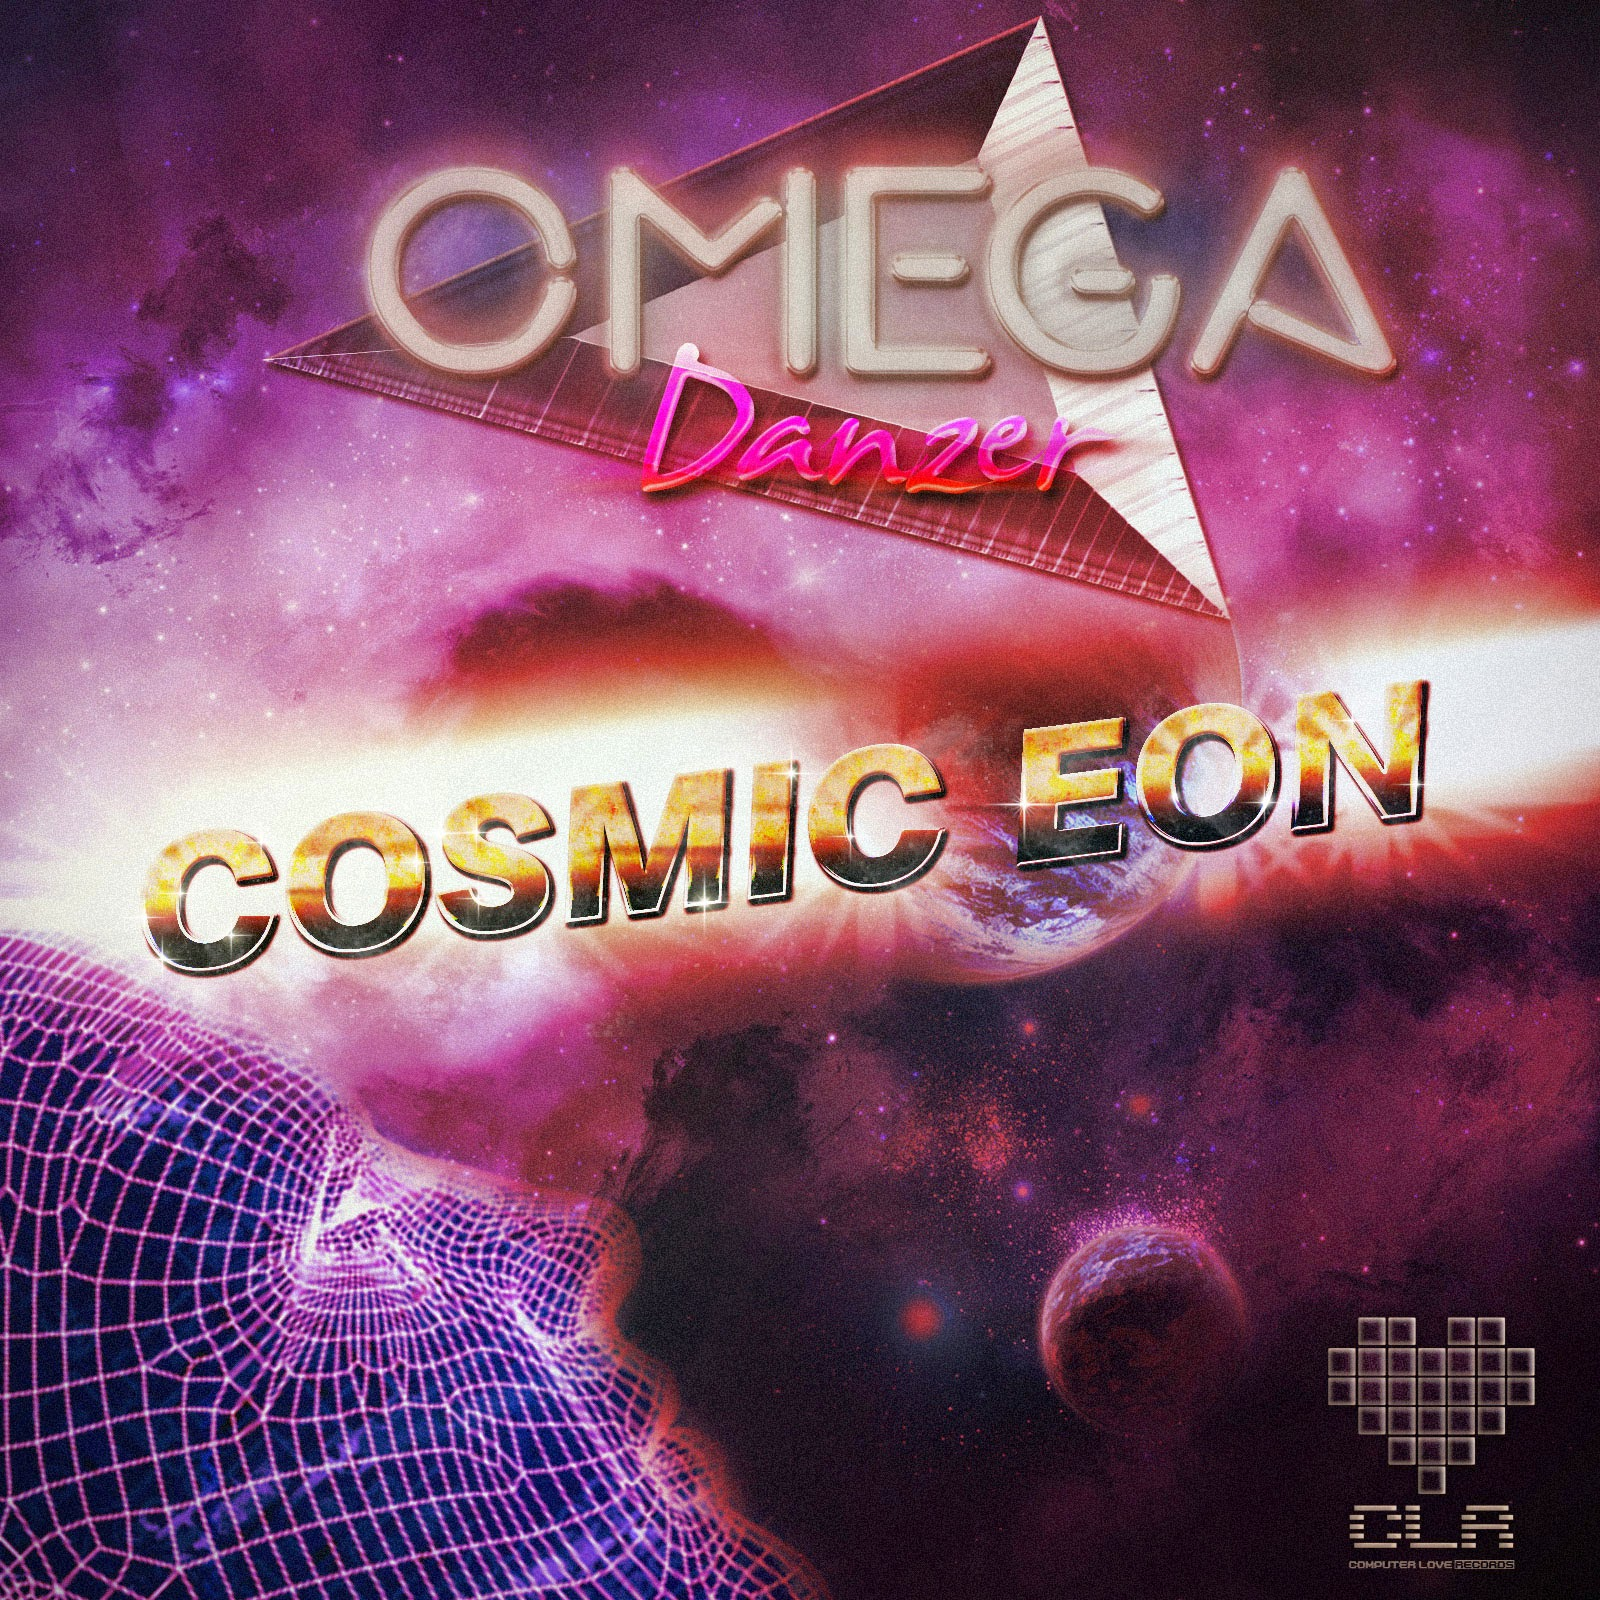 http://computerloverecords.blogspot.com/p/omega-danzer-cosmic-eon-single.html